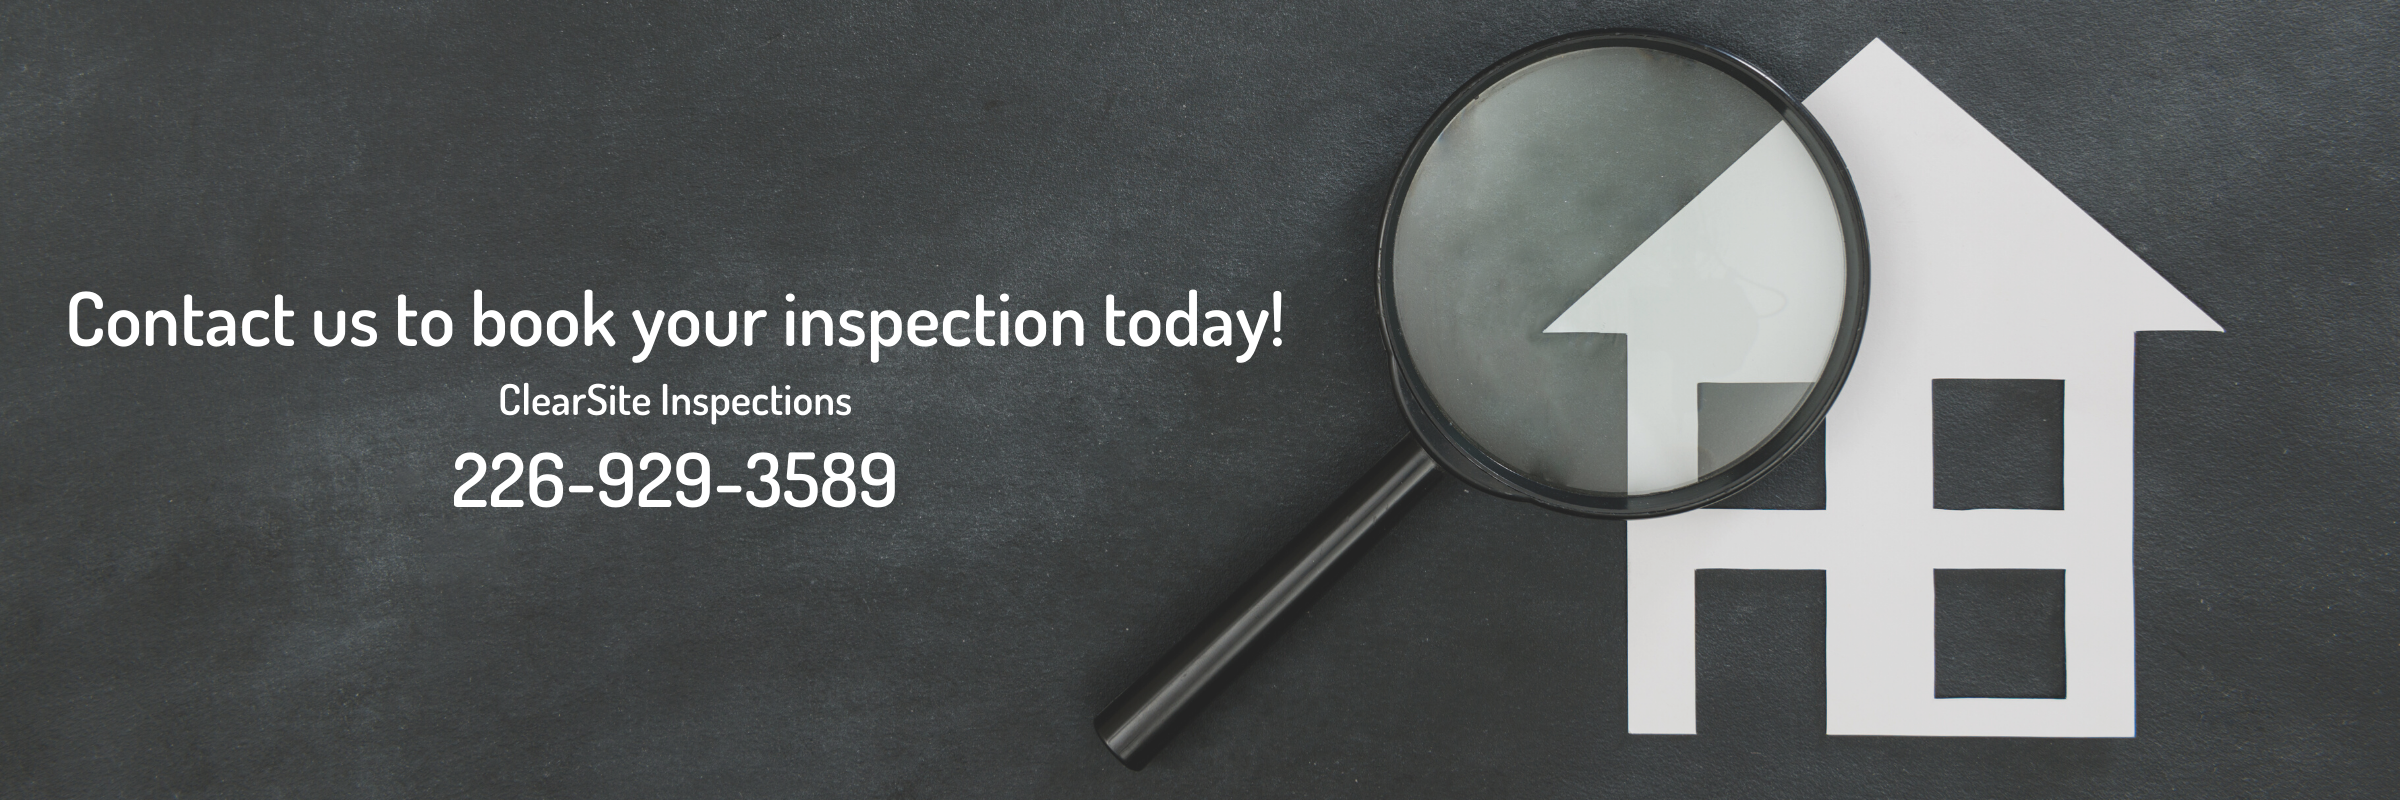 Clear Site Inspections Slider